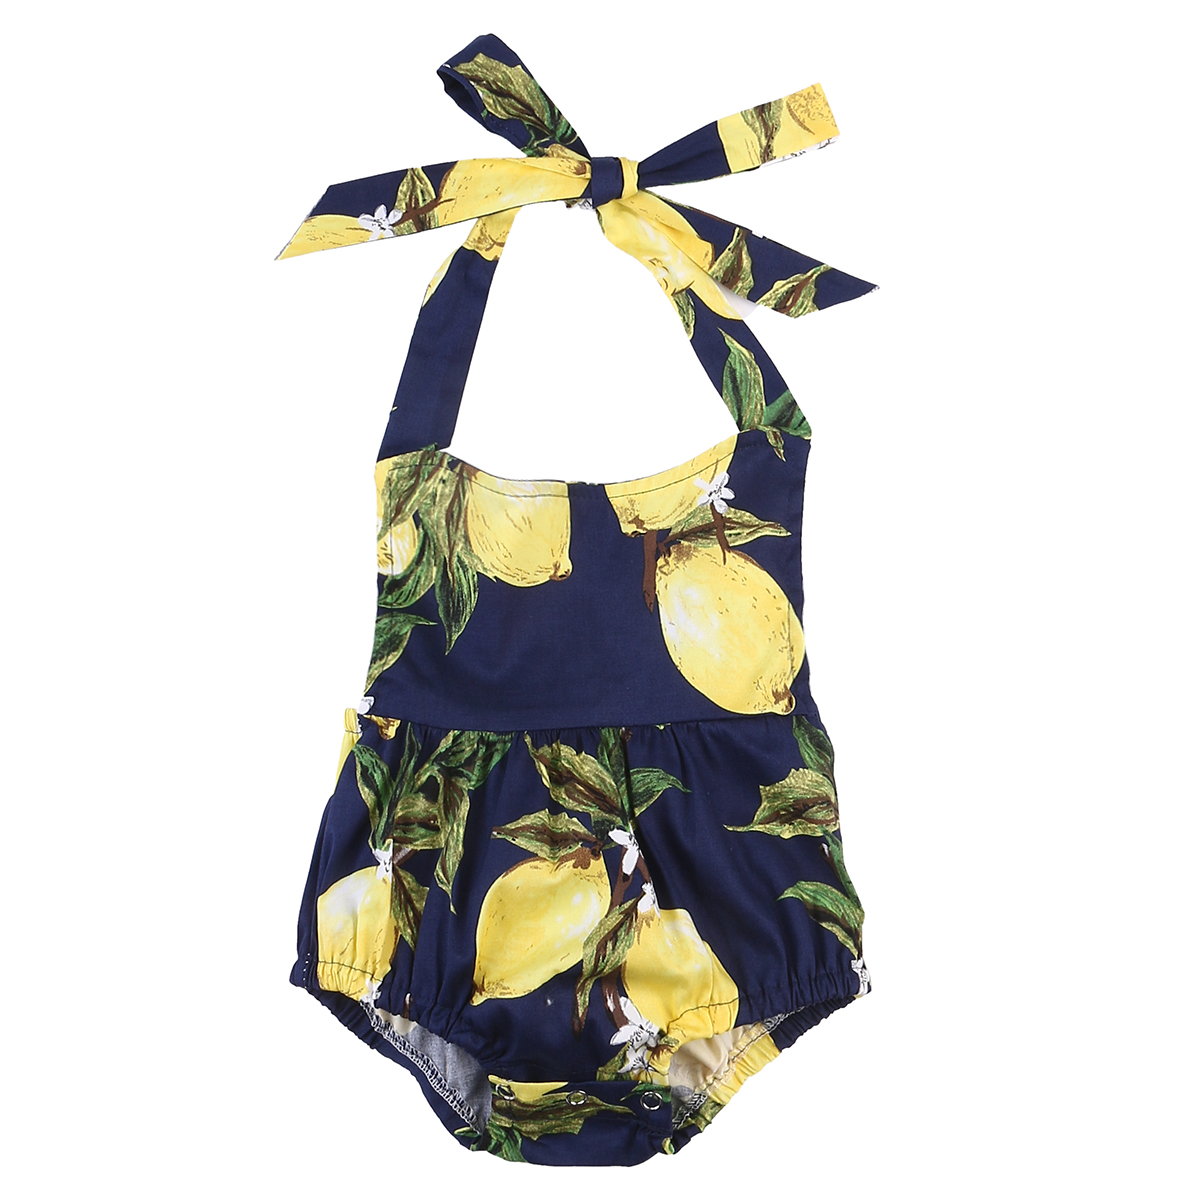 Summer 2017 Newborn Infant Baby Girls Romper Pear Floral Sleeveless Romper Cute Jumpsuit Outfit Baby Girl Clothing Sunsuit newborn infant baby clothes girls love floral strap romper jumpsuit outfit sunsuit summer cotton baby onesie girls clothing